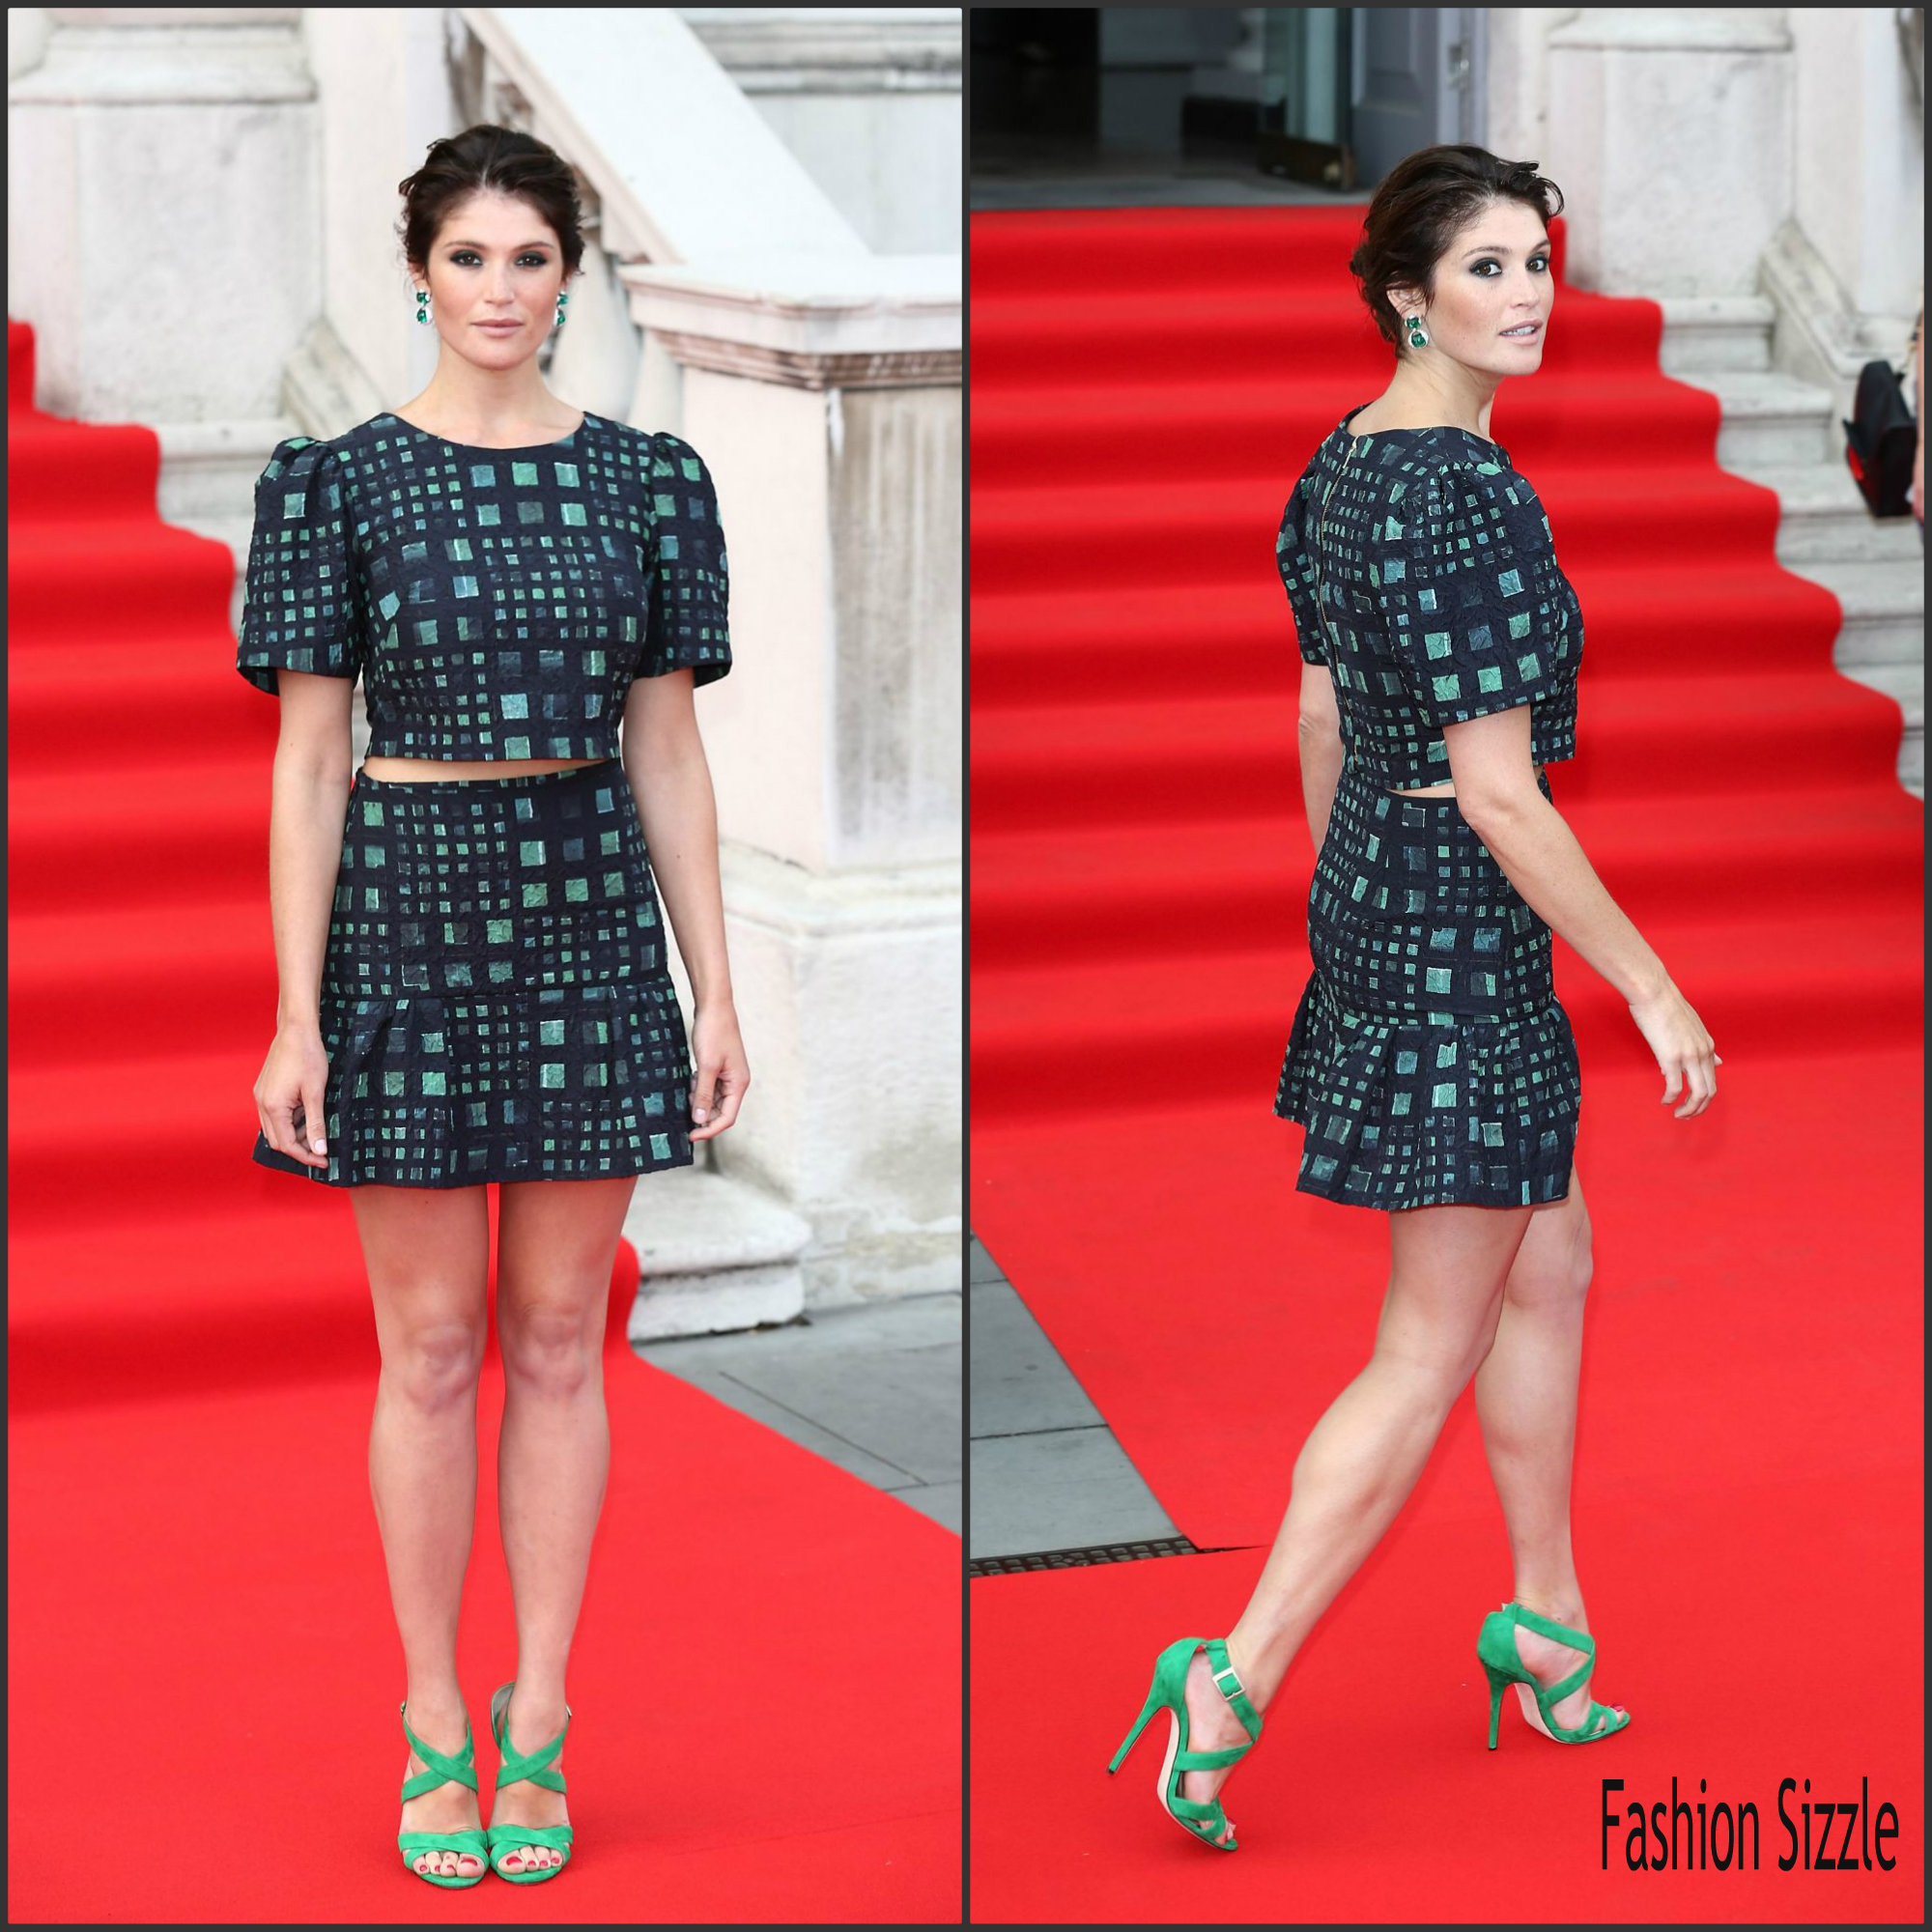 gemma-arterton-in-saloni-gemma-bovery-london-premiere